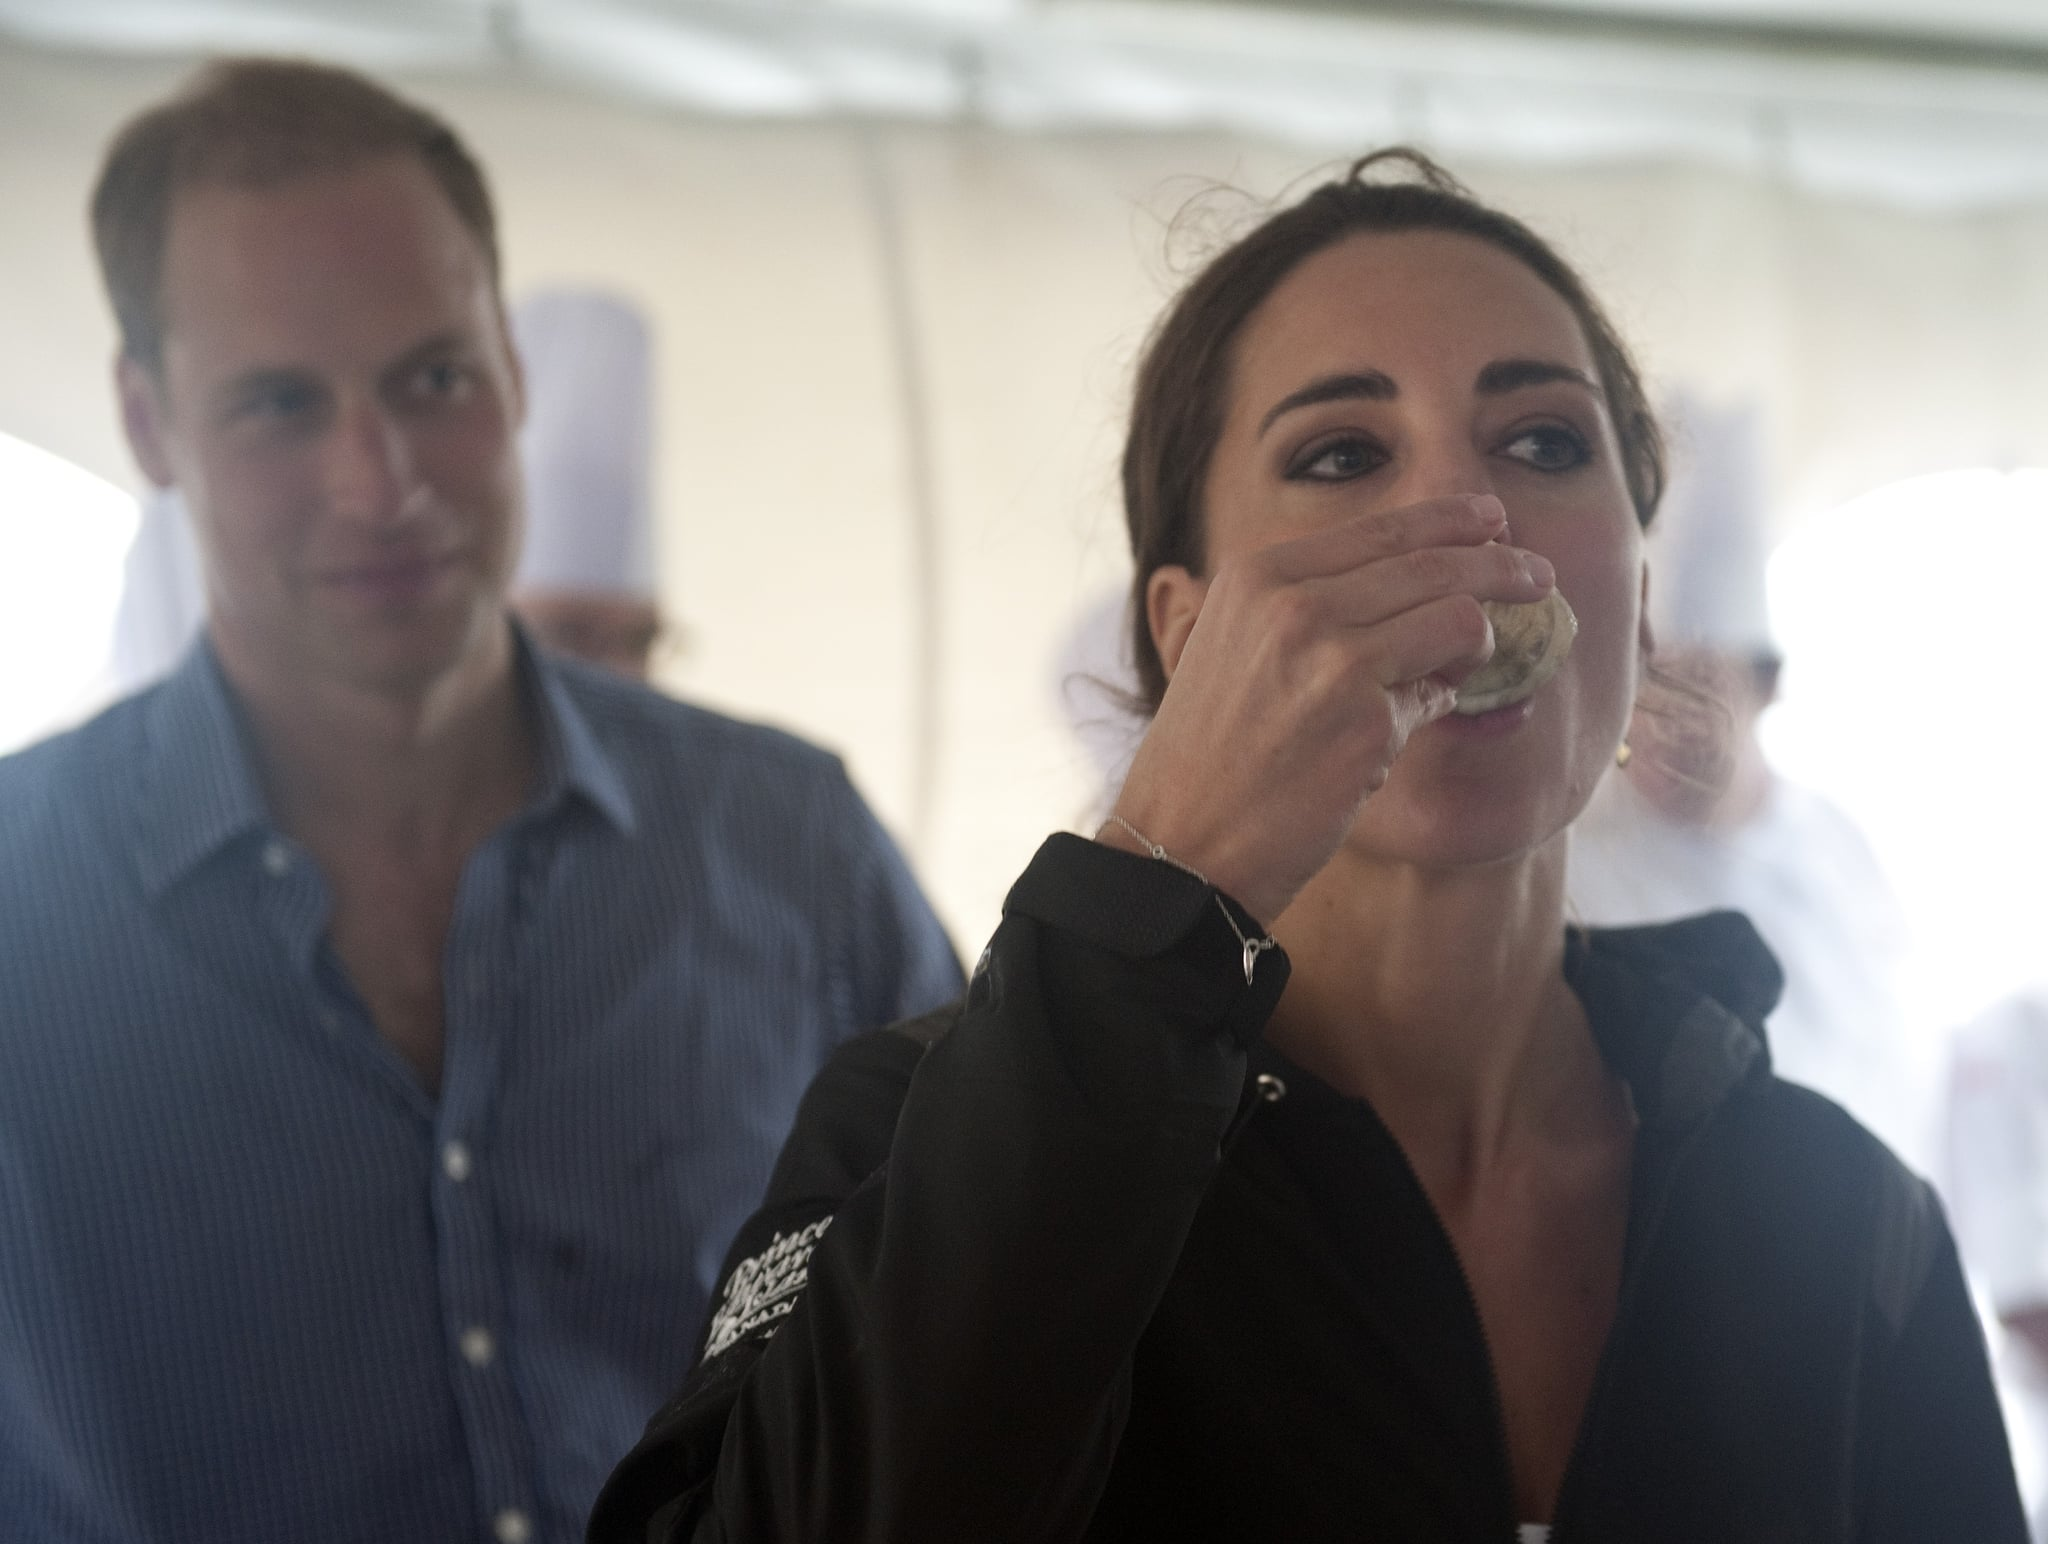 DALVAY BY THE SEA, PE - JULY 4: Prince William, Duke of Cambridge and Catherine, Duchess of Cambridge meet with local chefs in the culinary station where the Duchess tried a local oyster, on July 4, 2011 at Dalvay by the Sea, Prince Edward Island , Canada. The newly married Royal Couple are on the fifth day of their first joint overseas tour. The 12 day visit to North America is taking in some of the more remote areas of the country such as Prince Edward Island, Yellowknife and Calgary. The Royal couple started off their tour by joining millions of Canadians in taking part in Canada Day celebrations which mark Canada's 144th Birthday.  .(Photo by Mark Large-Pool/Getty Images)